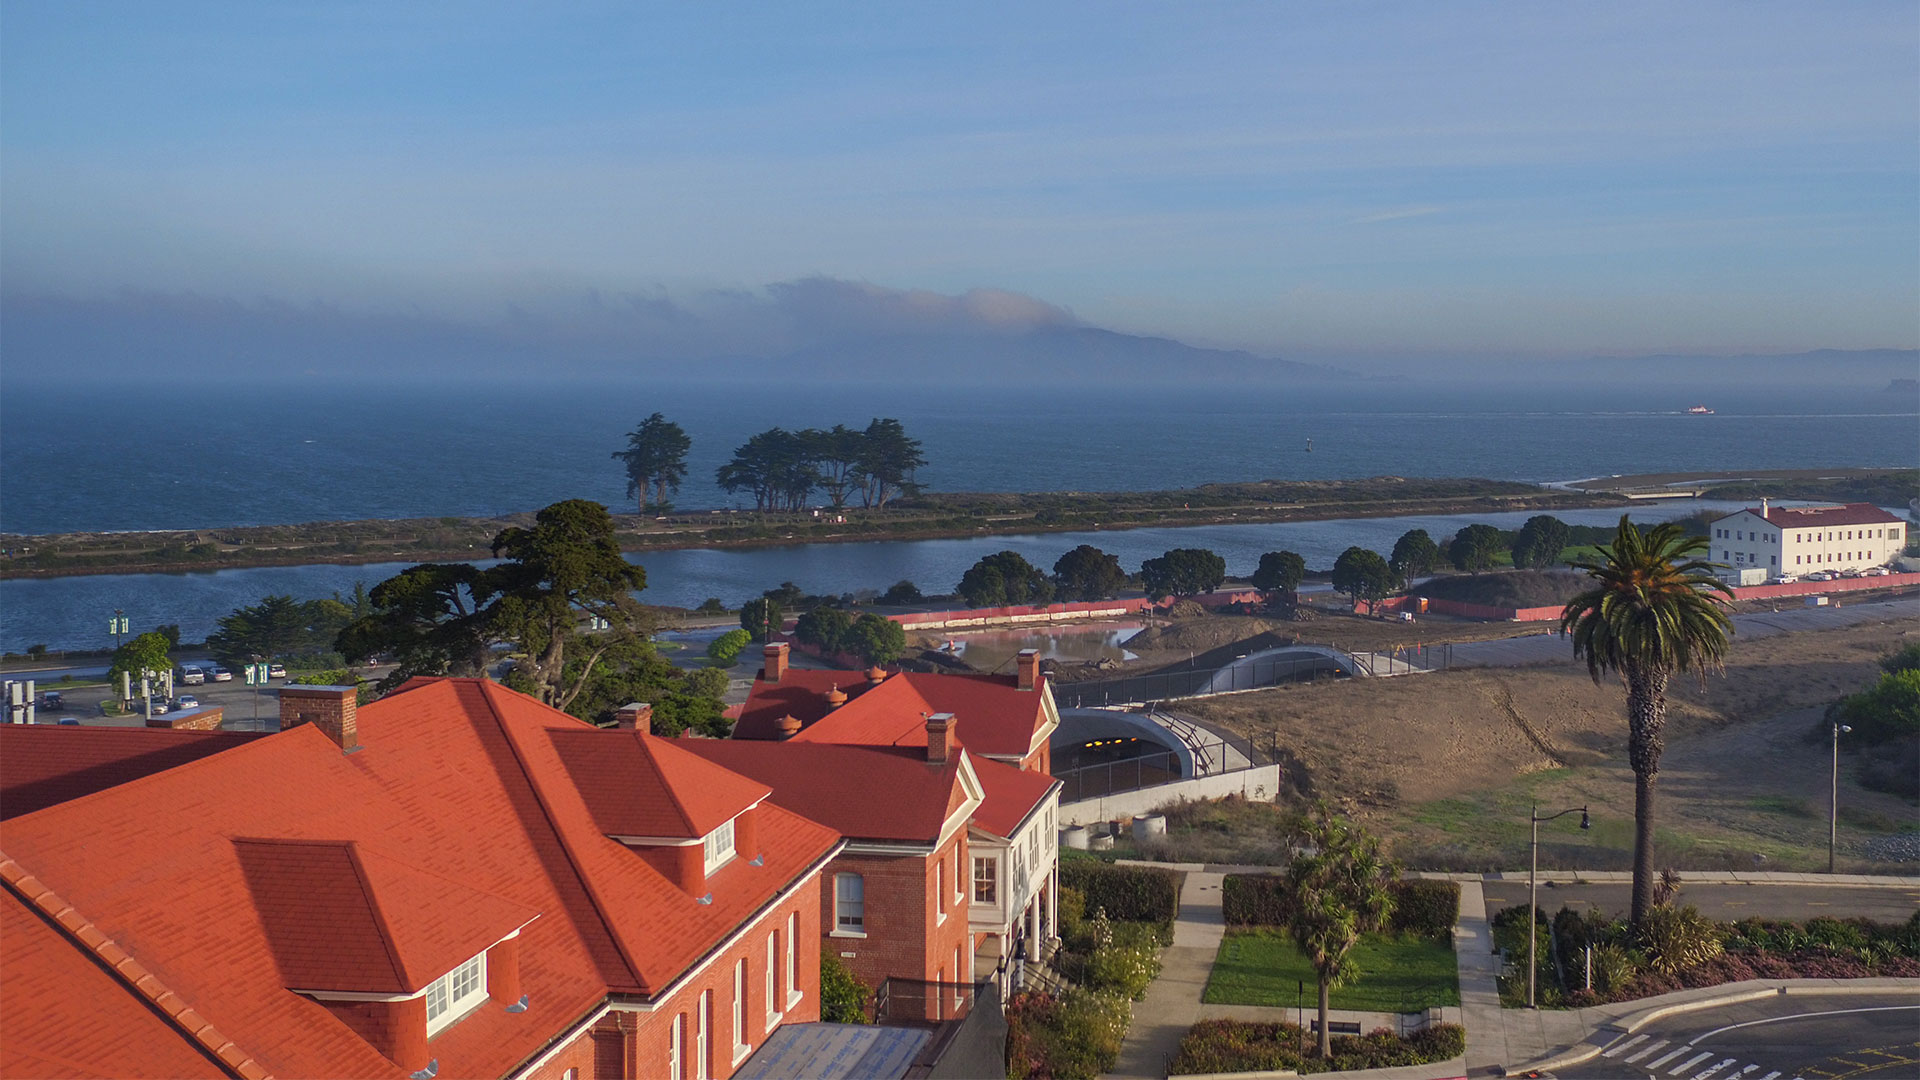 From the Lodge looking towards Alcatraz